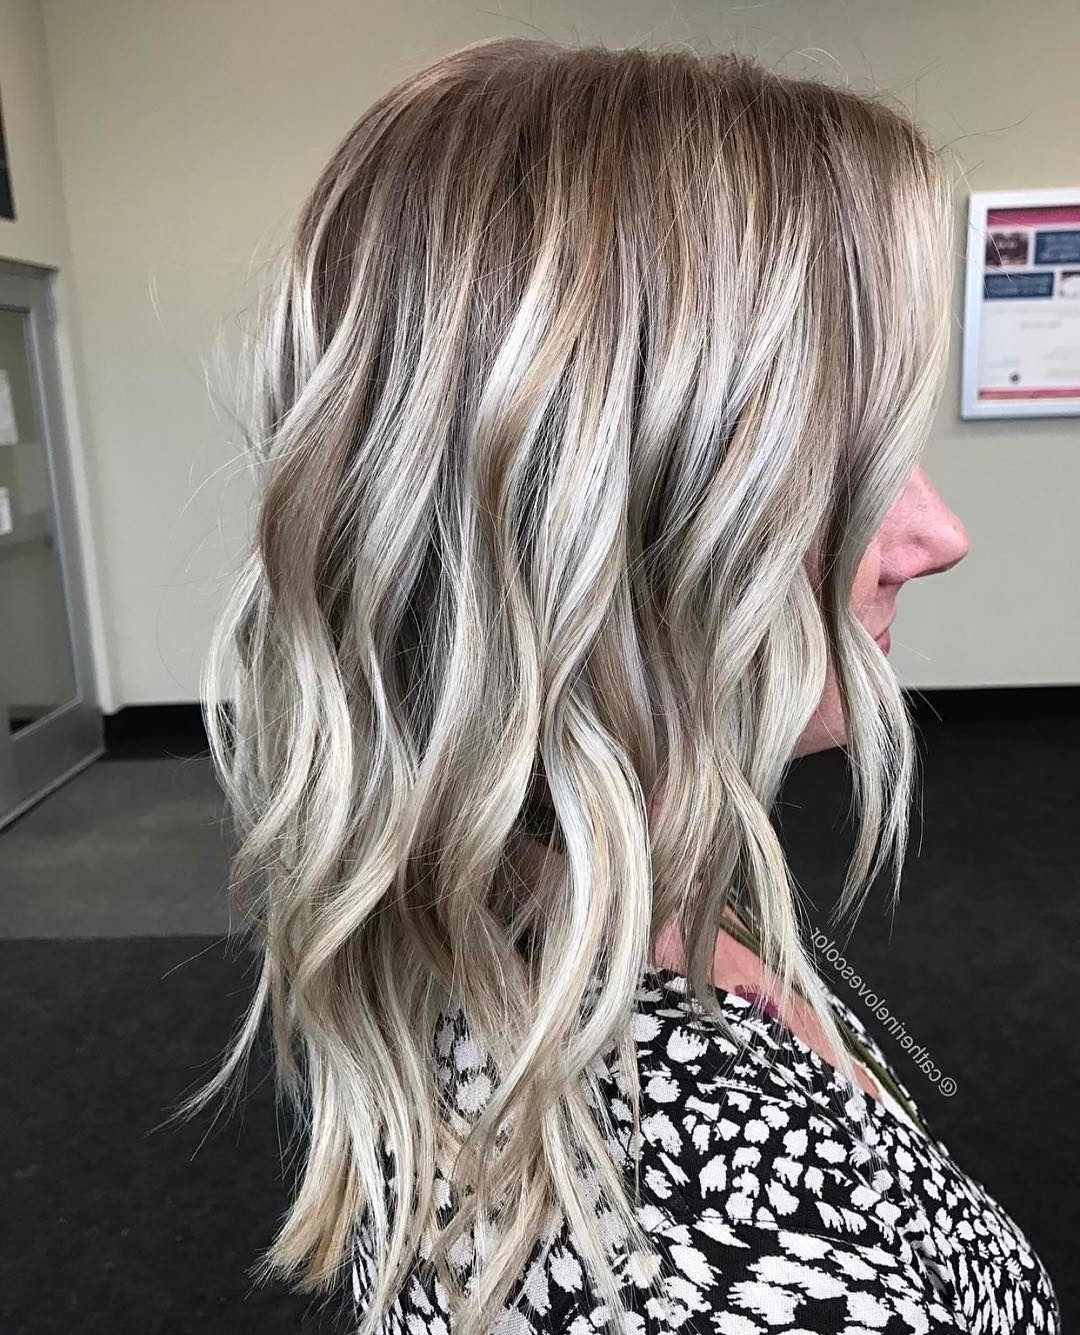 20 Adorable Ash Blonde Hairstyles To Try: Hair Color Ideas 2018 Pertaining To Latest Super Straight Ash Blonde Bob Hairstyles (View 14 of 20)